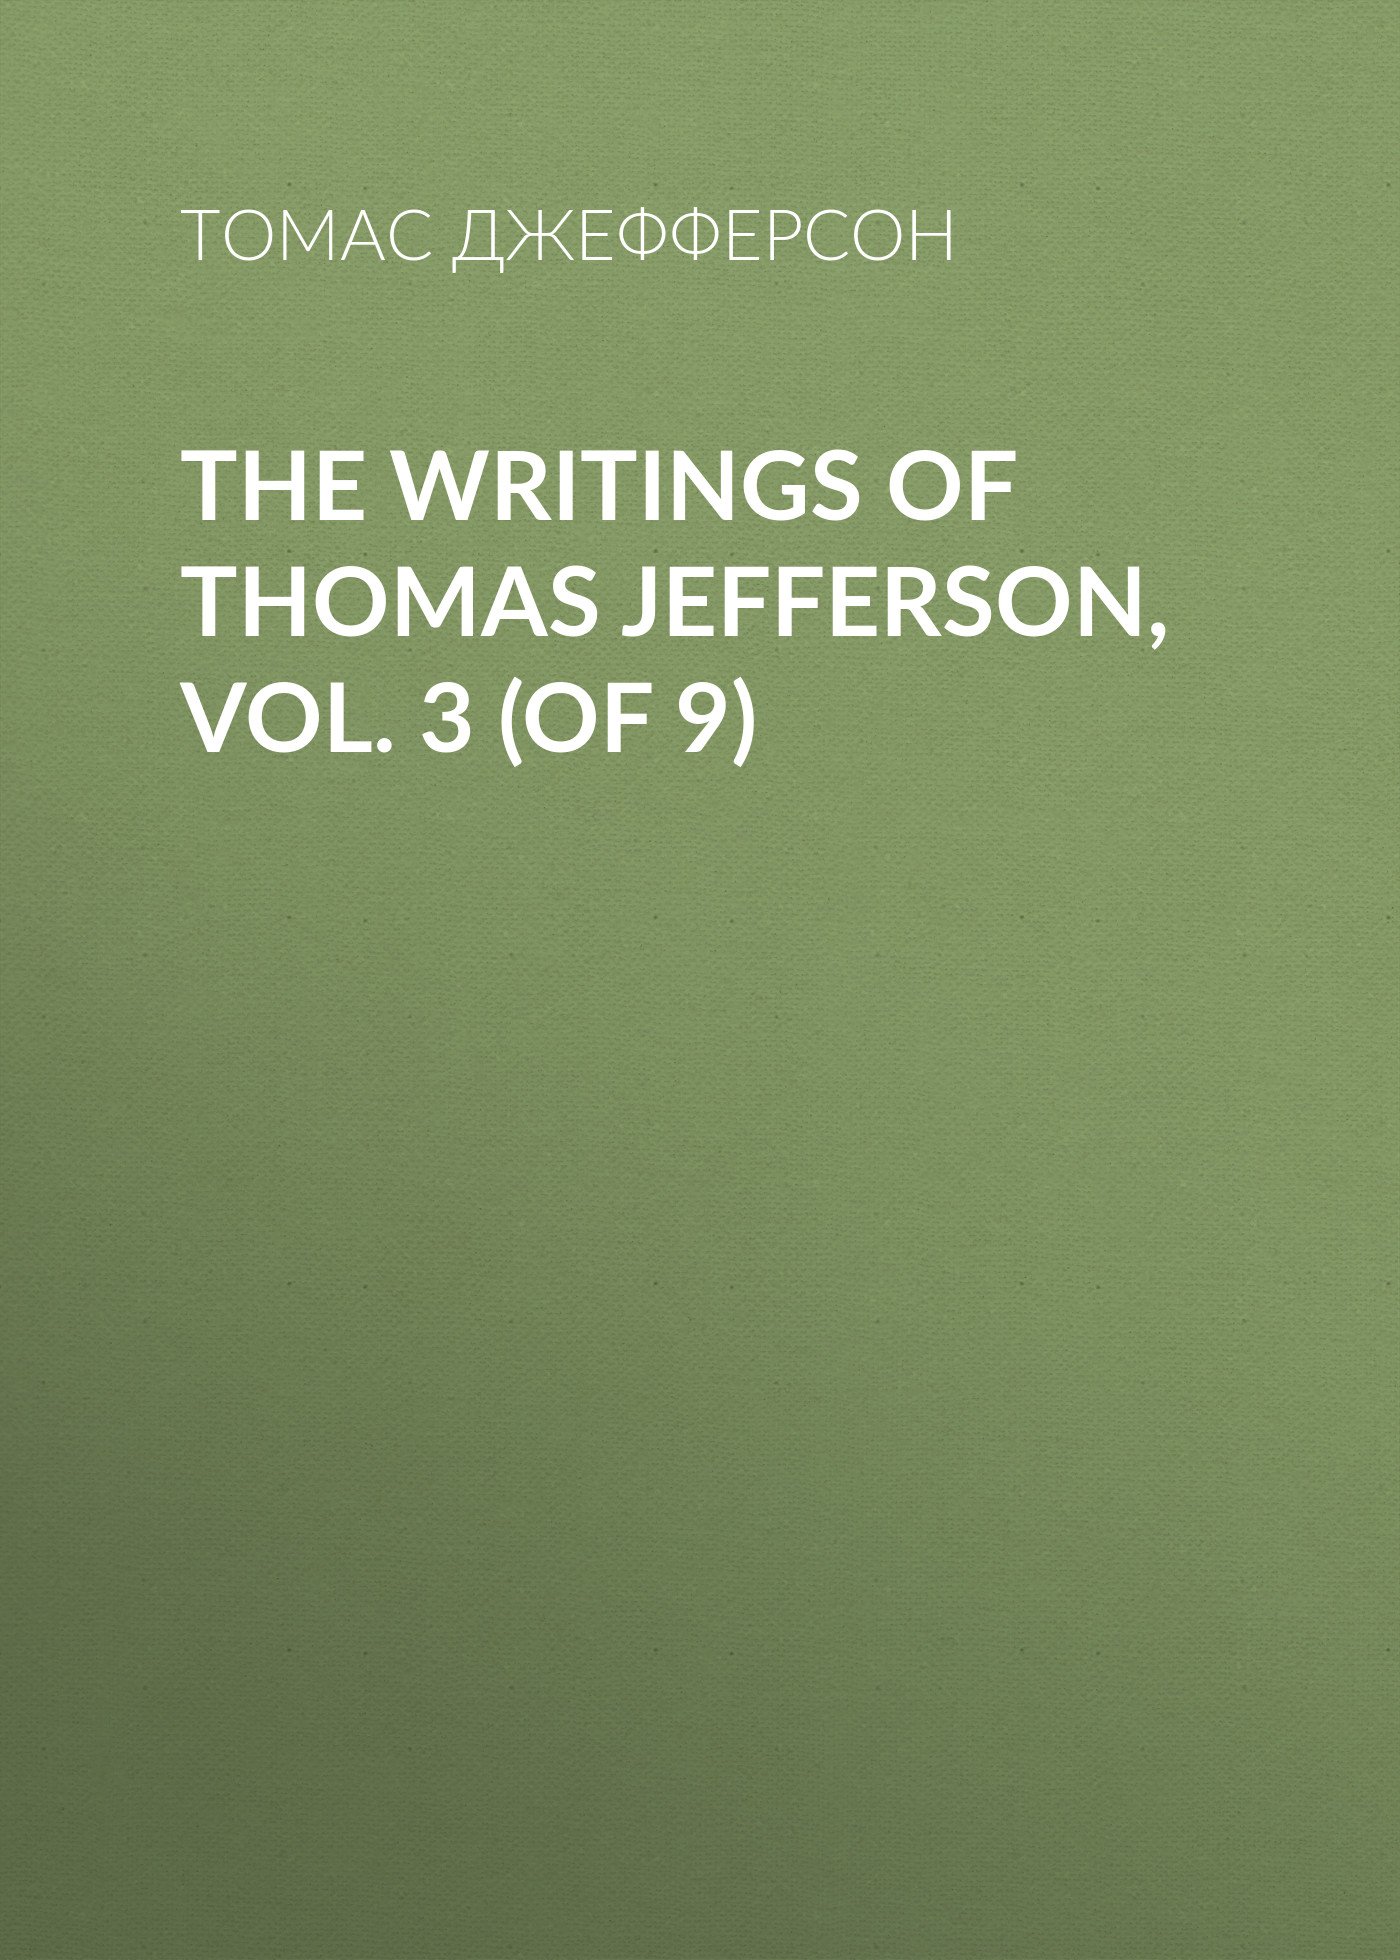 Томас Джефферсон The Writings of Thomas Jefferson, Vol. 3 (of 9) jack of fables vol 9 the end